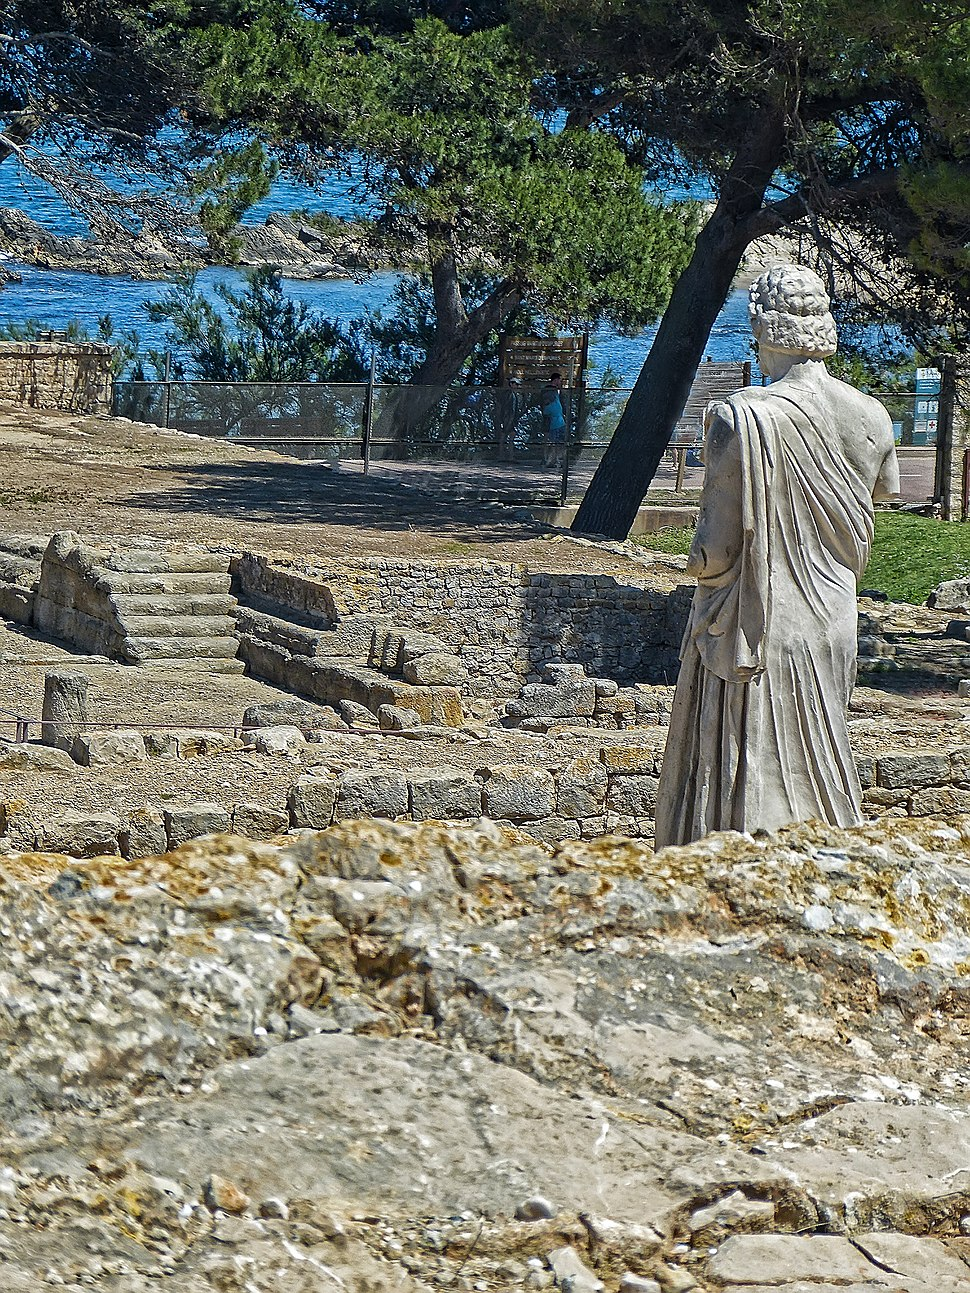 Remains of ancient Greek city of Neapolis with reproduction of Aesclepius at the archaeological site of Empúries